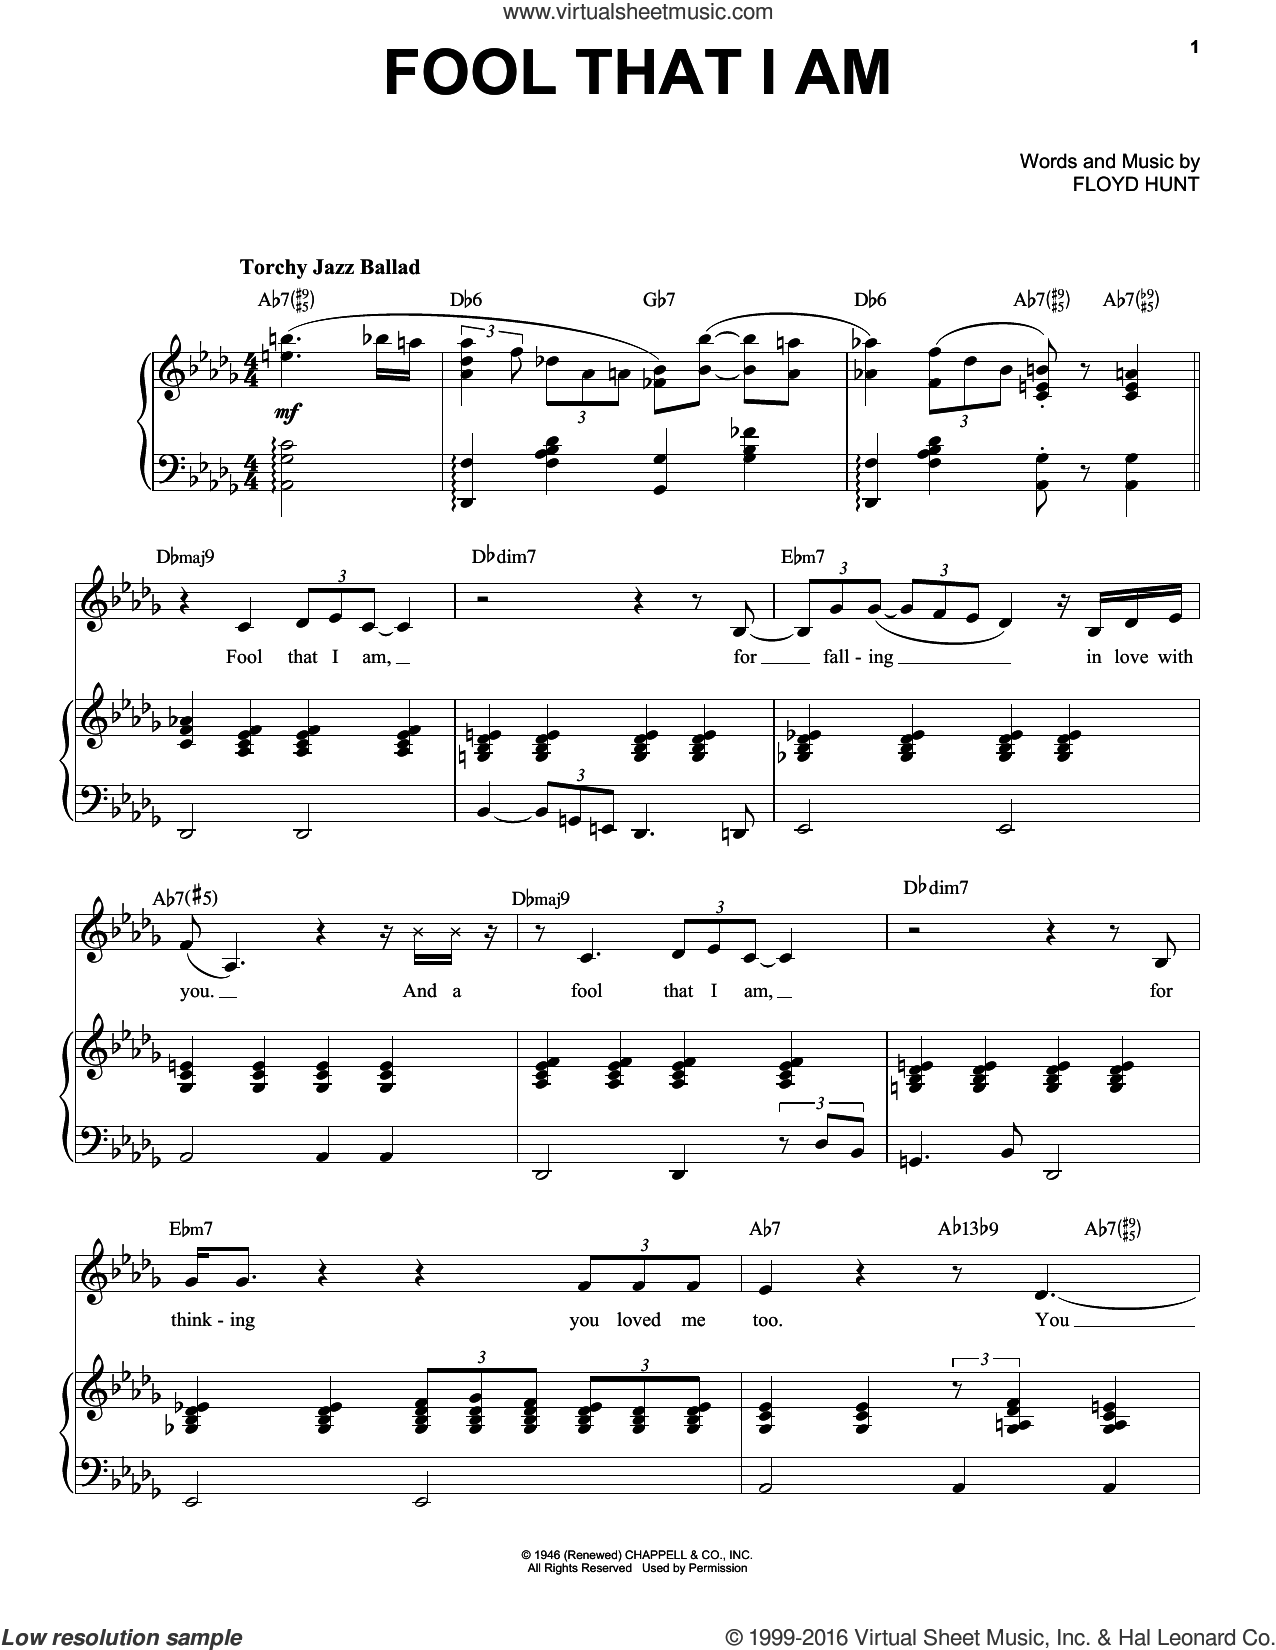 Fool That I Am sheet music for voice and piano by Floyd Hunt